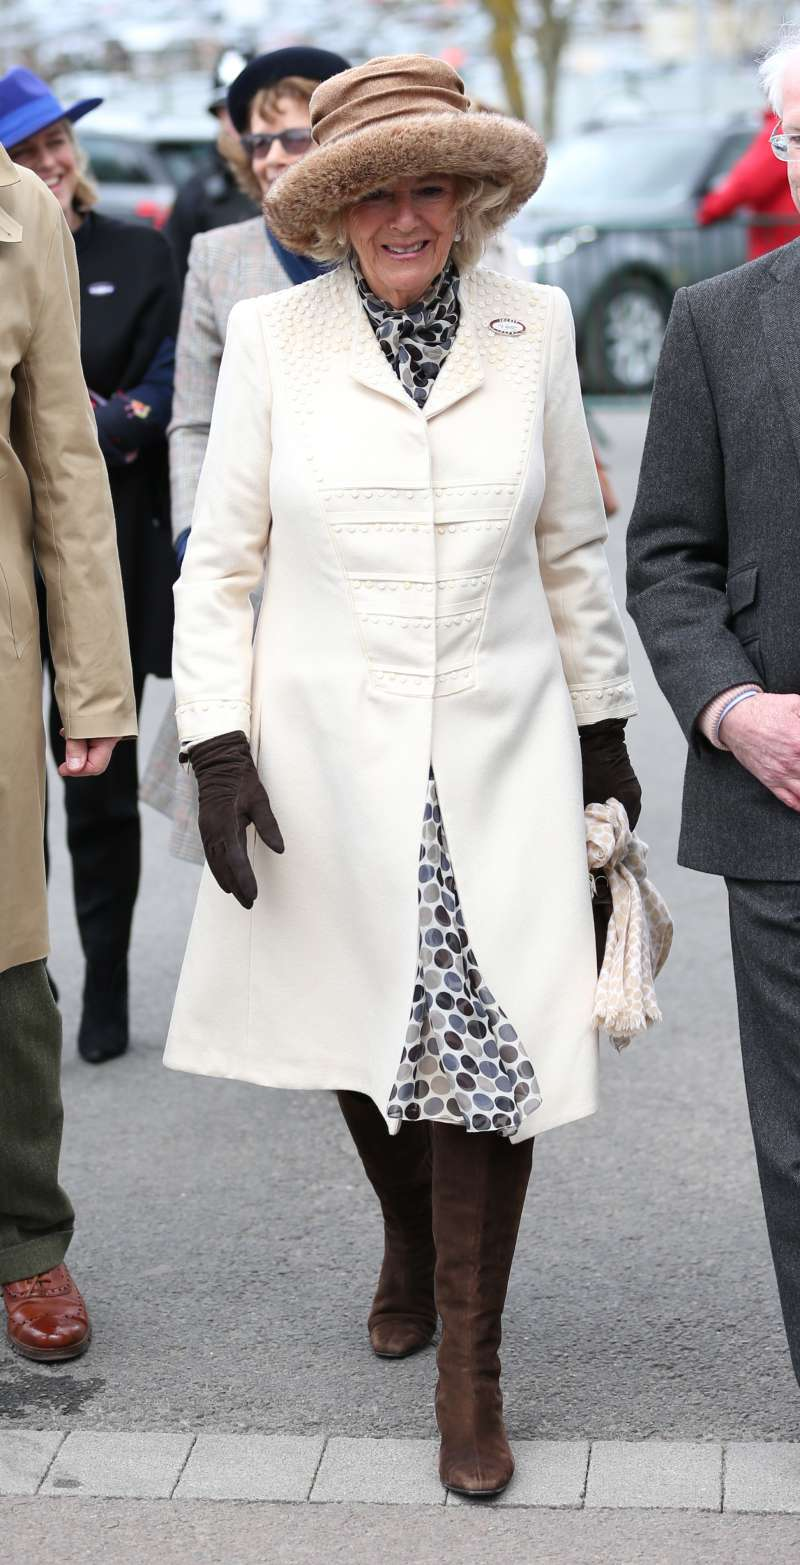 Such An Unexpected Choice! Duchess Camilla Glows In An Embroided Cream Coat At Cheltenham FestivalSuch An Unexpected Choice! Duchess Camilla Glows In An Embroided Cream Coat At Cheltenham FestivalSuch An Unexpected Choice! Duchess Camilla Glows In An Embroided Cream Coat At Cheltenham Festival